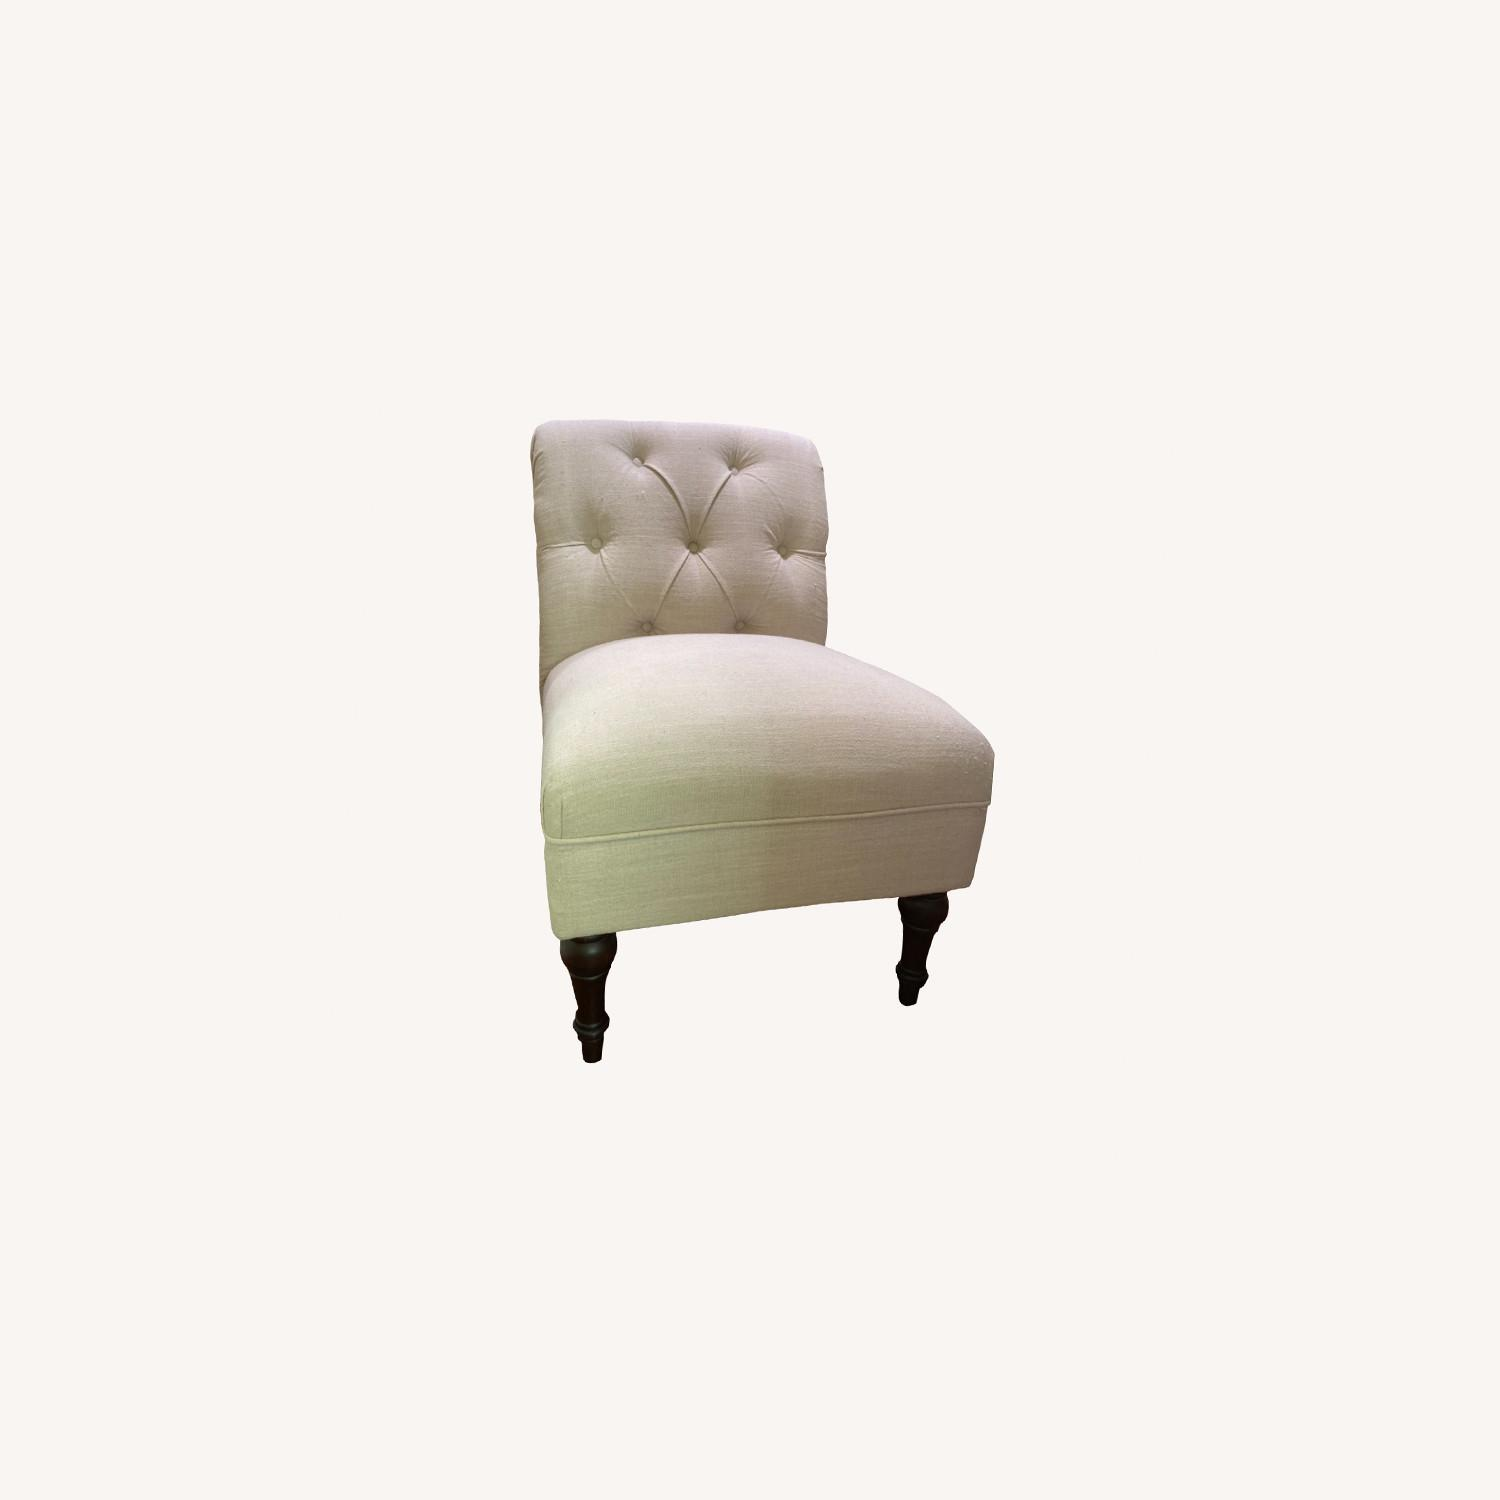 Target Beige Cushioned Chair - image-0